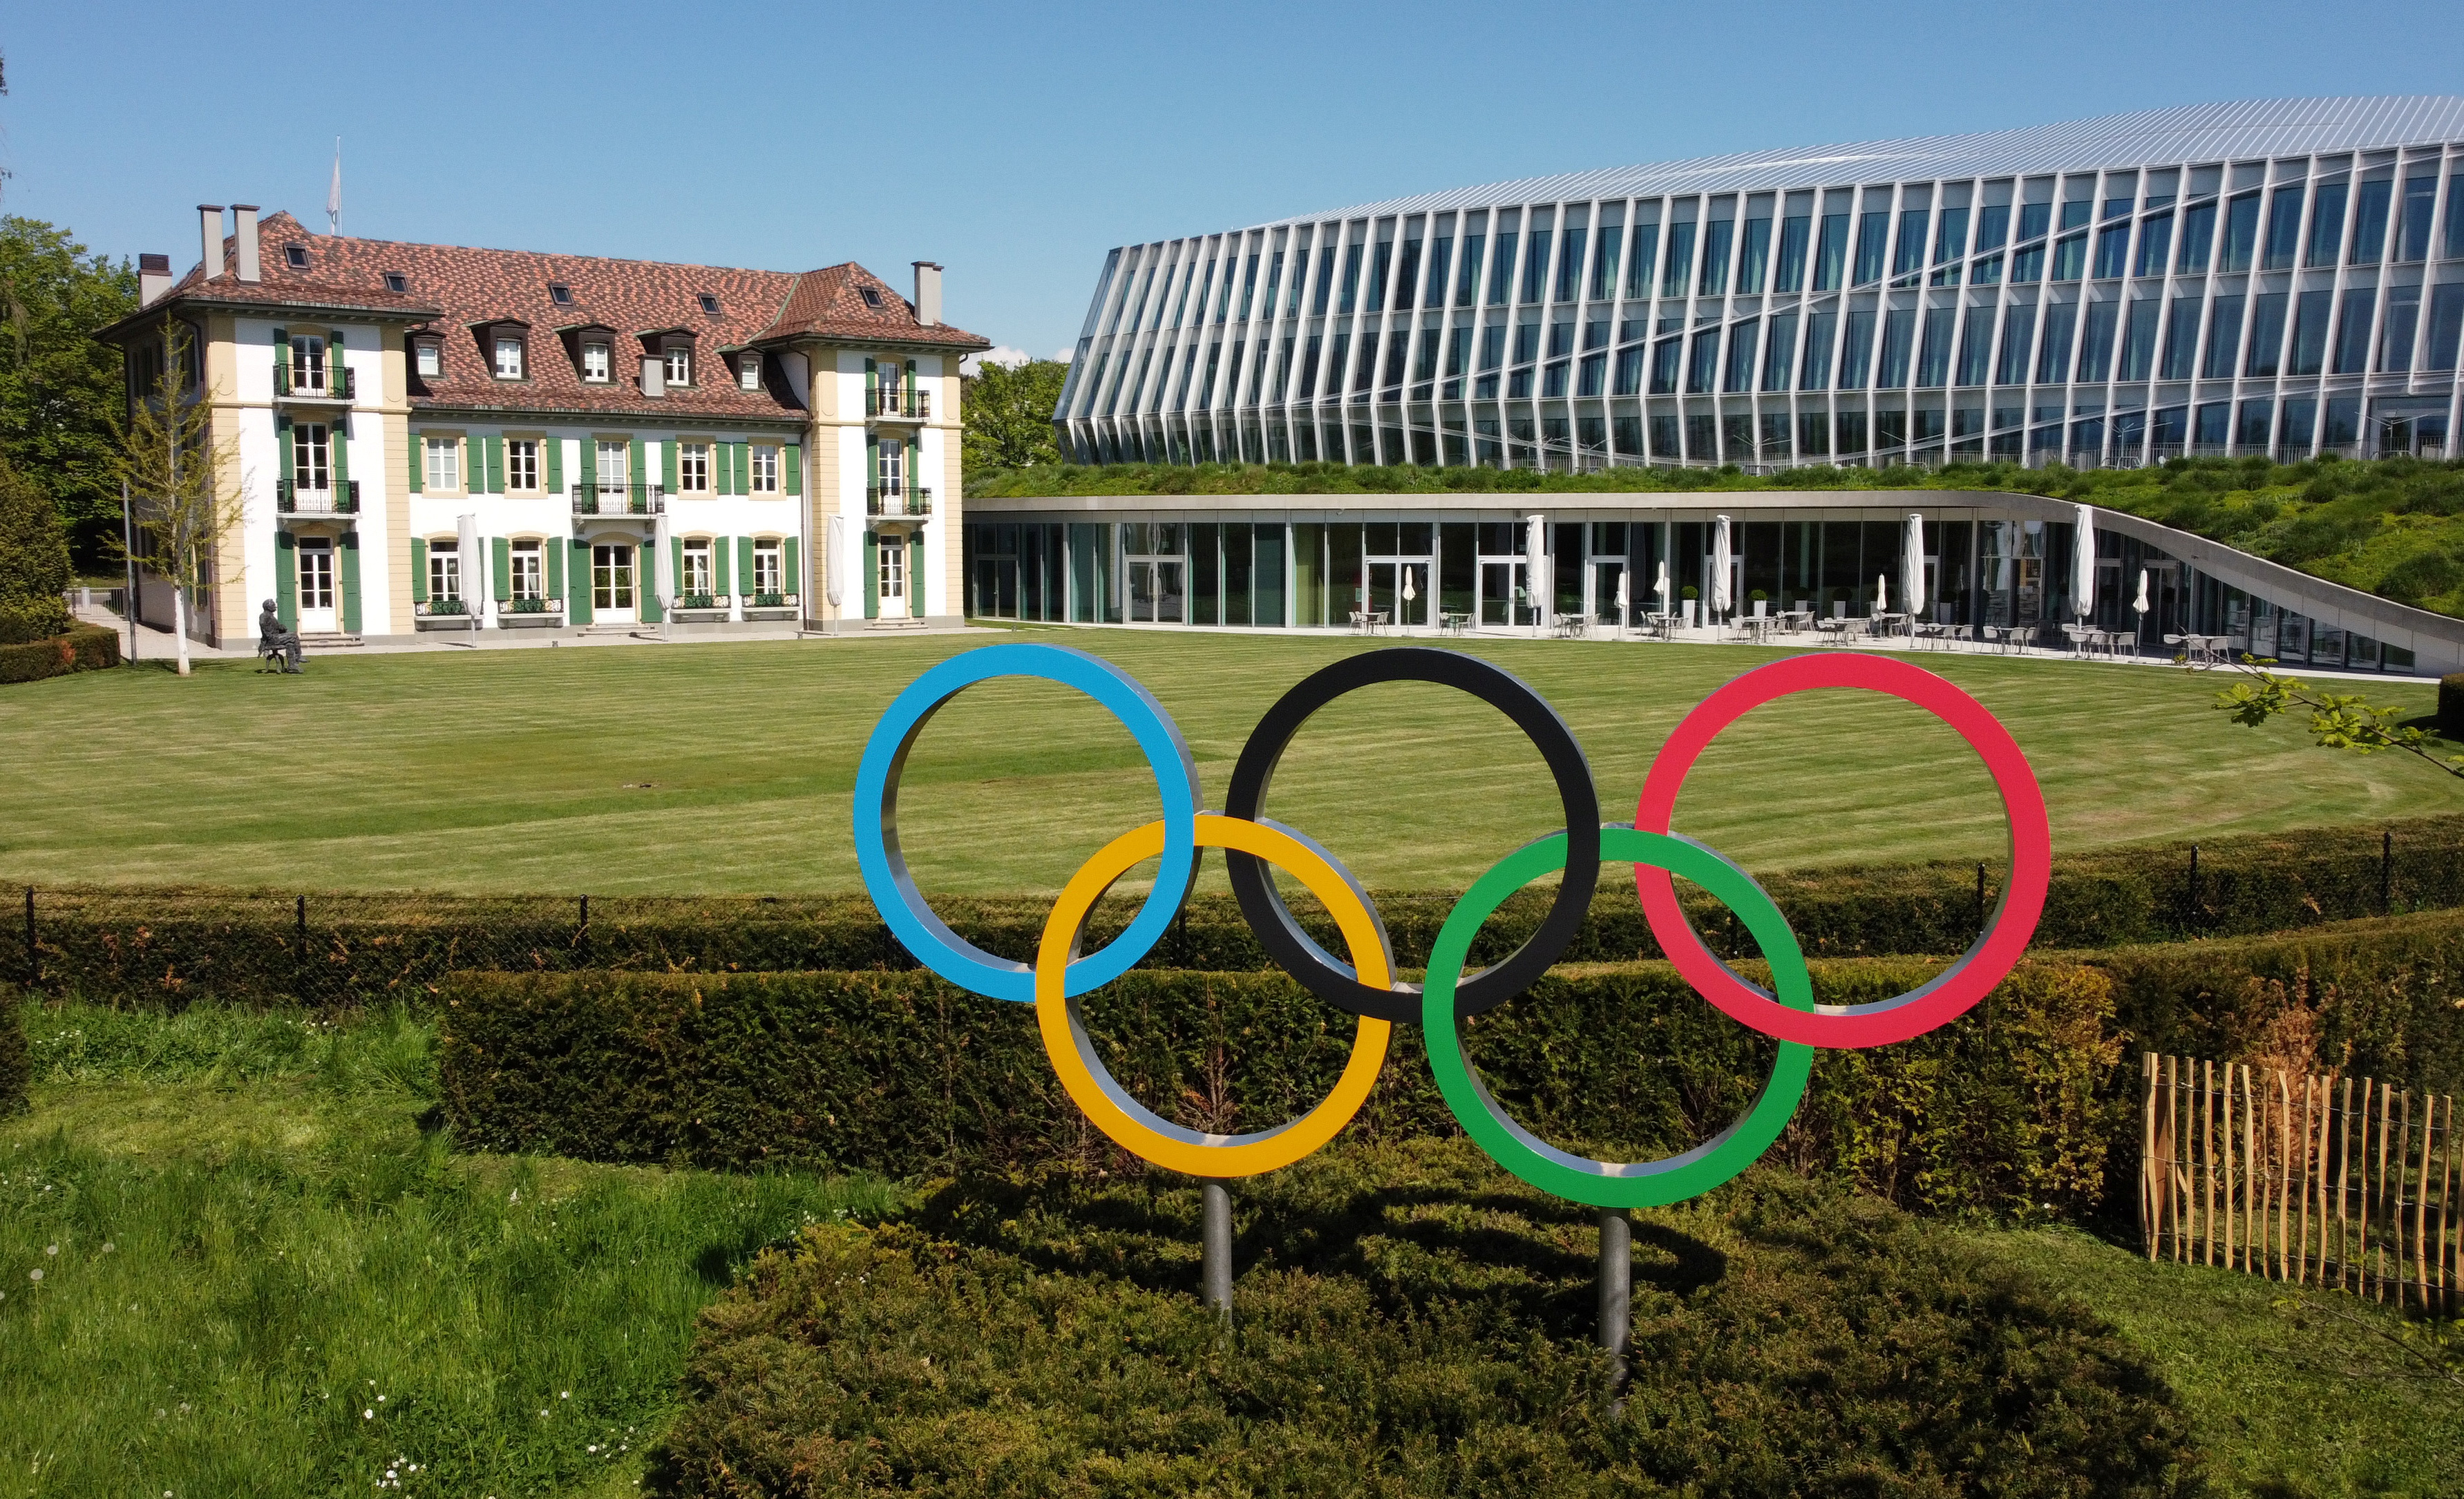 The Olympic rings are pictured in front of the International Olympic Committee (IOC) headquarters in Lausanne, Switzerland, May 3, 2021. Picture taken with a drone. REUTERS/Denis Balibouse